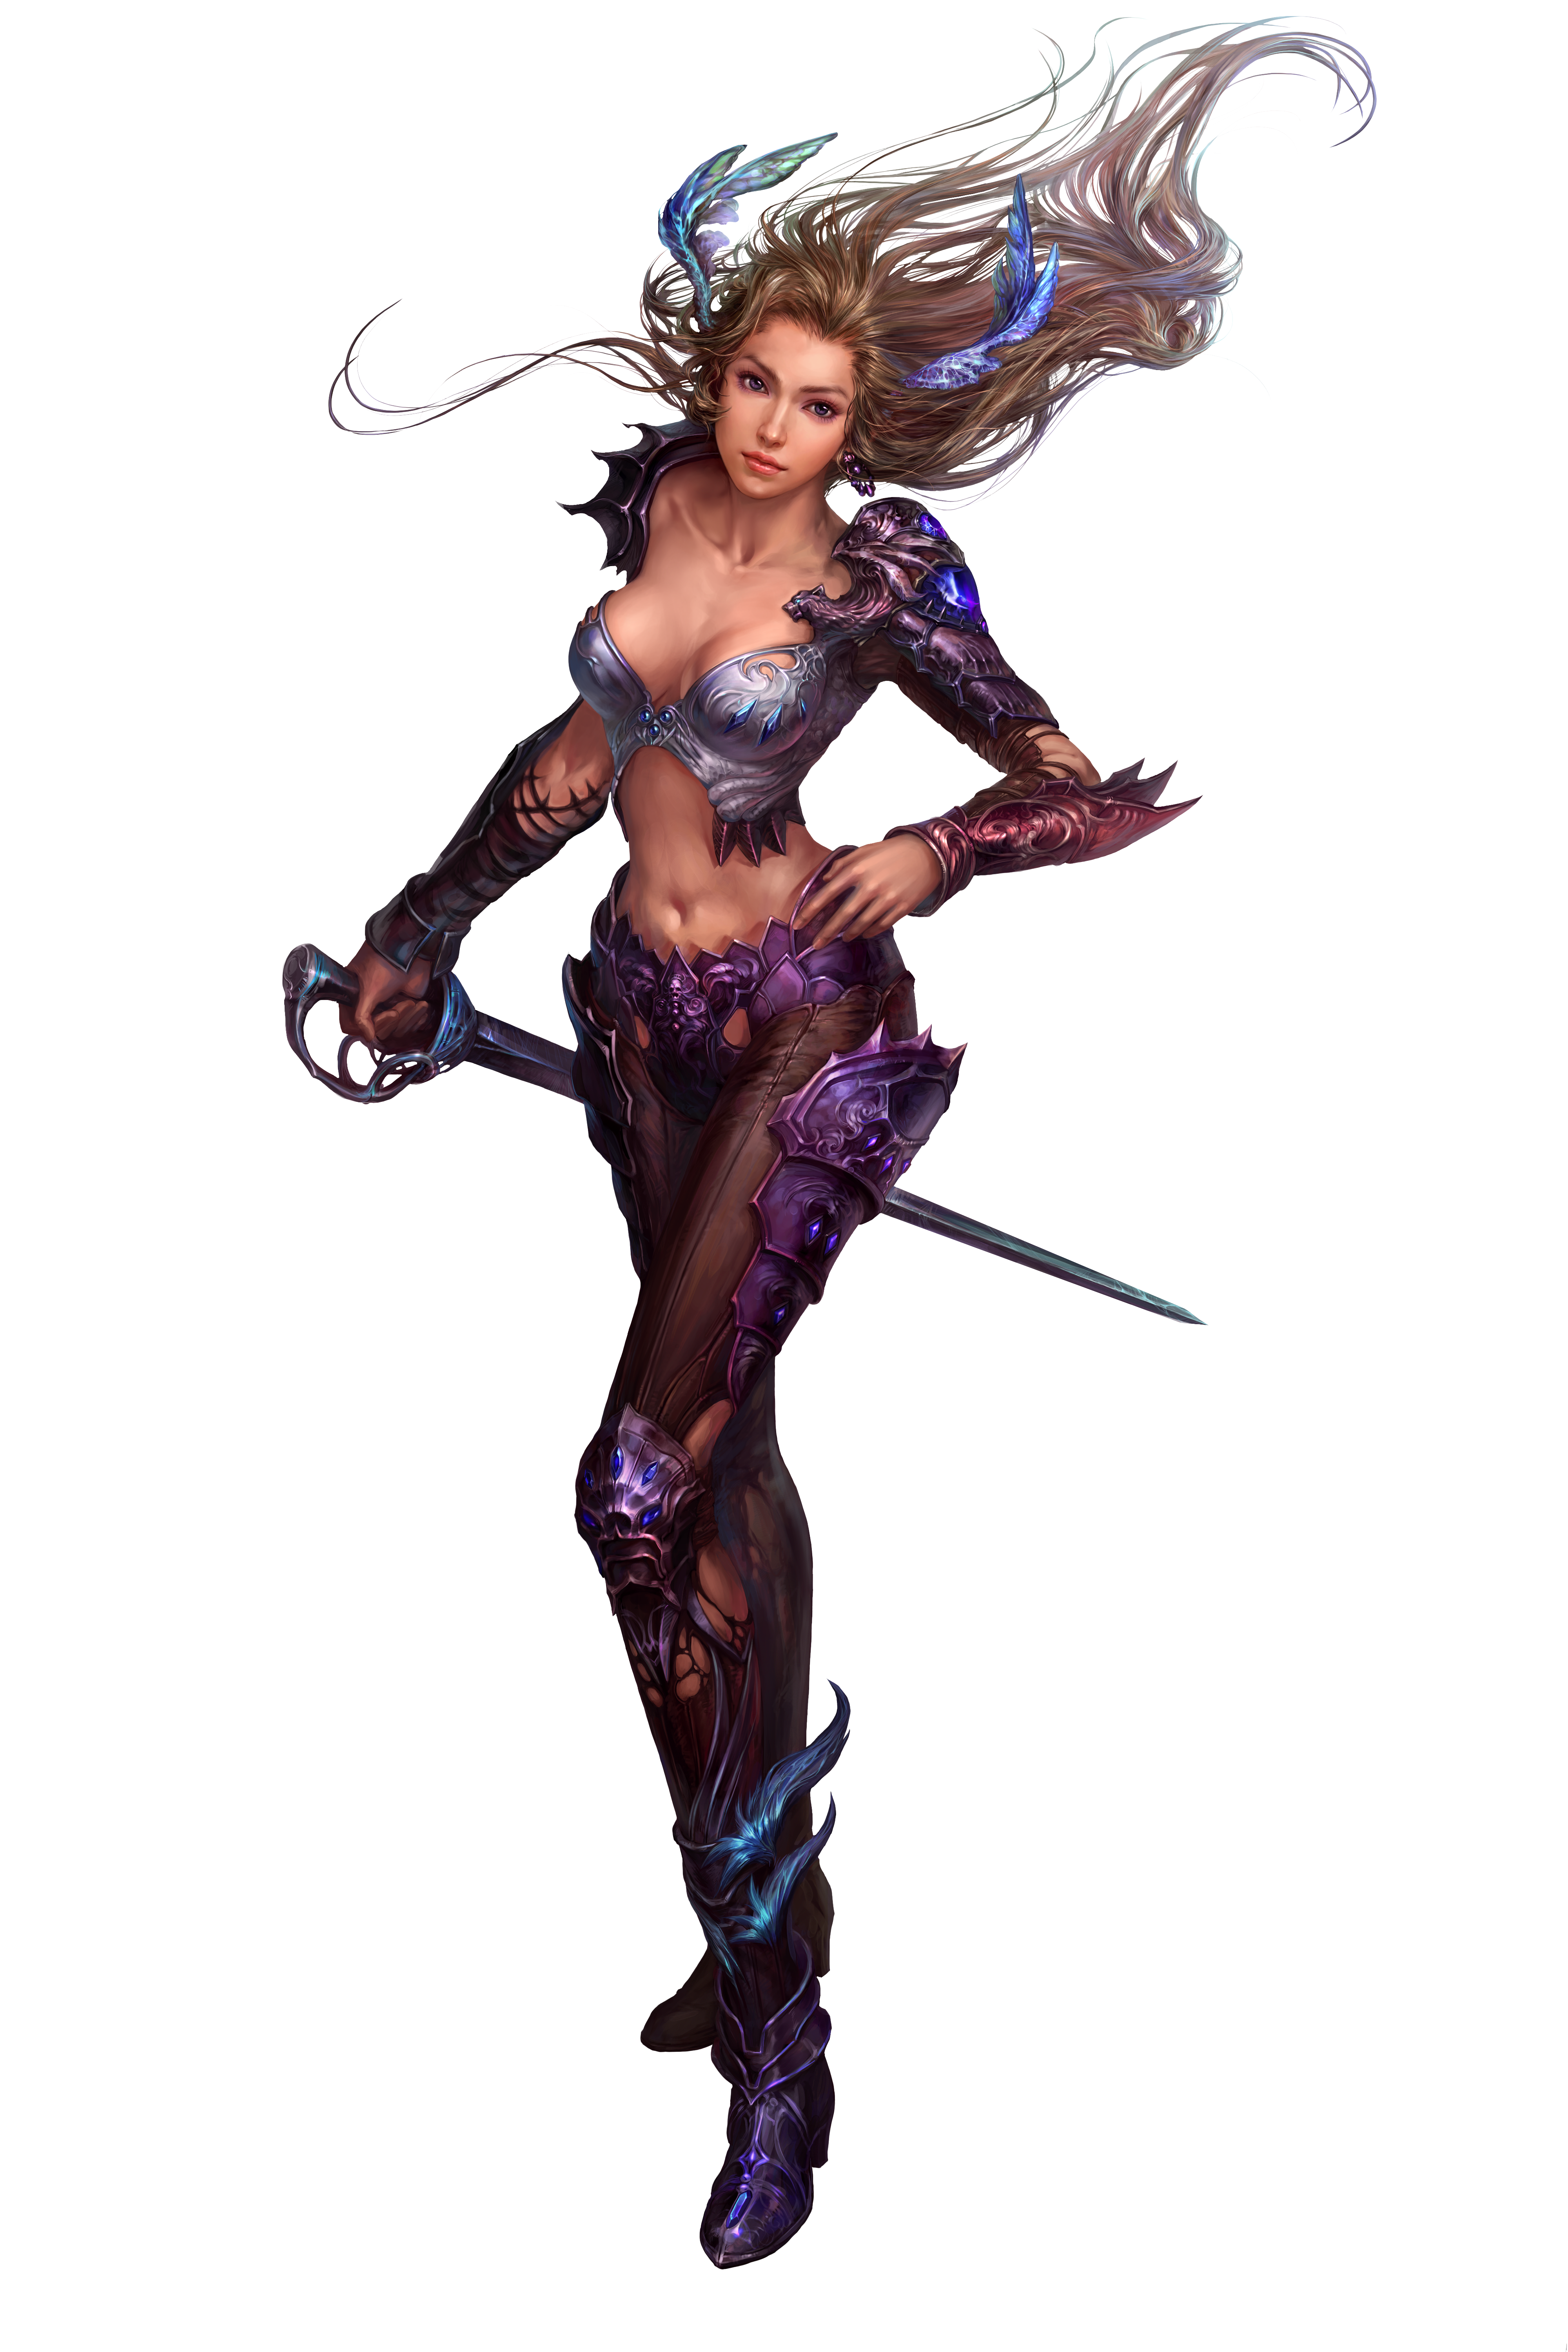 Pin By Hisomu On Transparent Background Fantasy Characters Superhero Wonder Woman